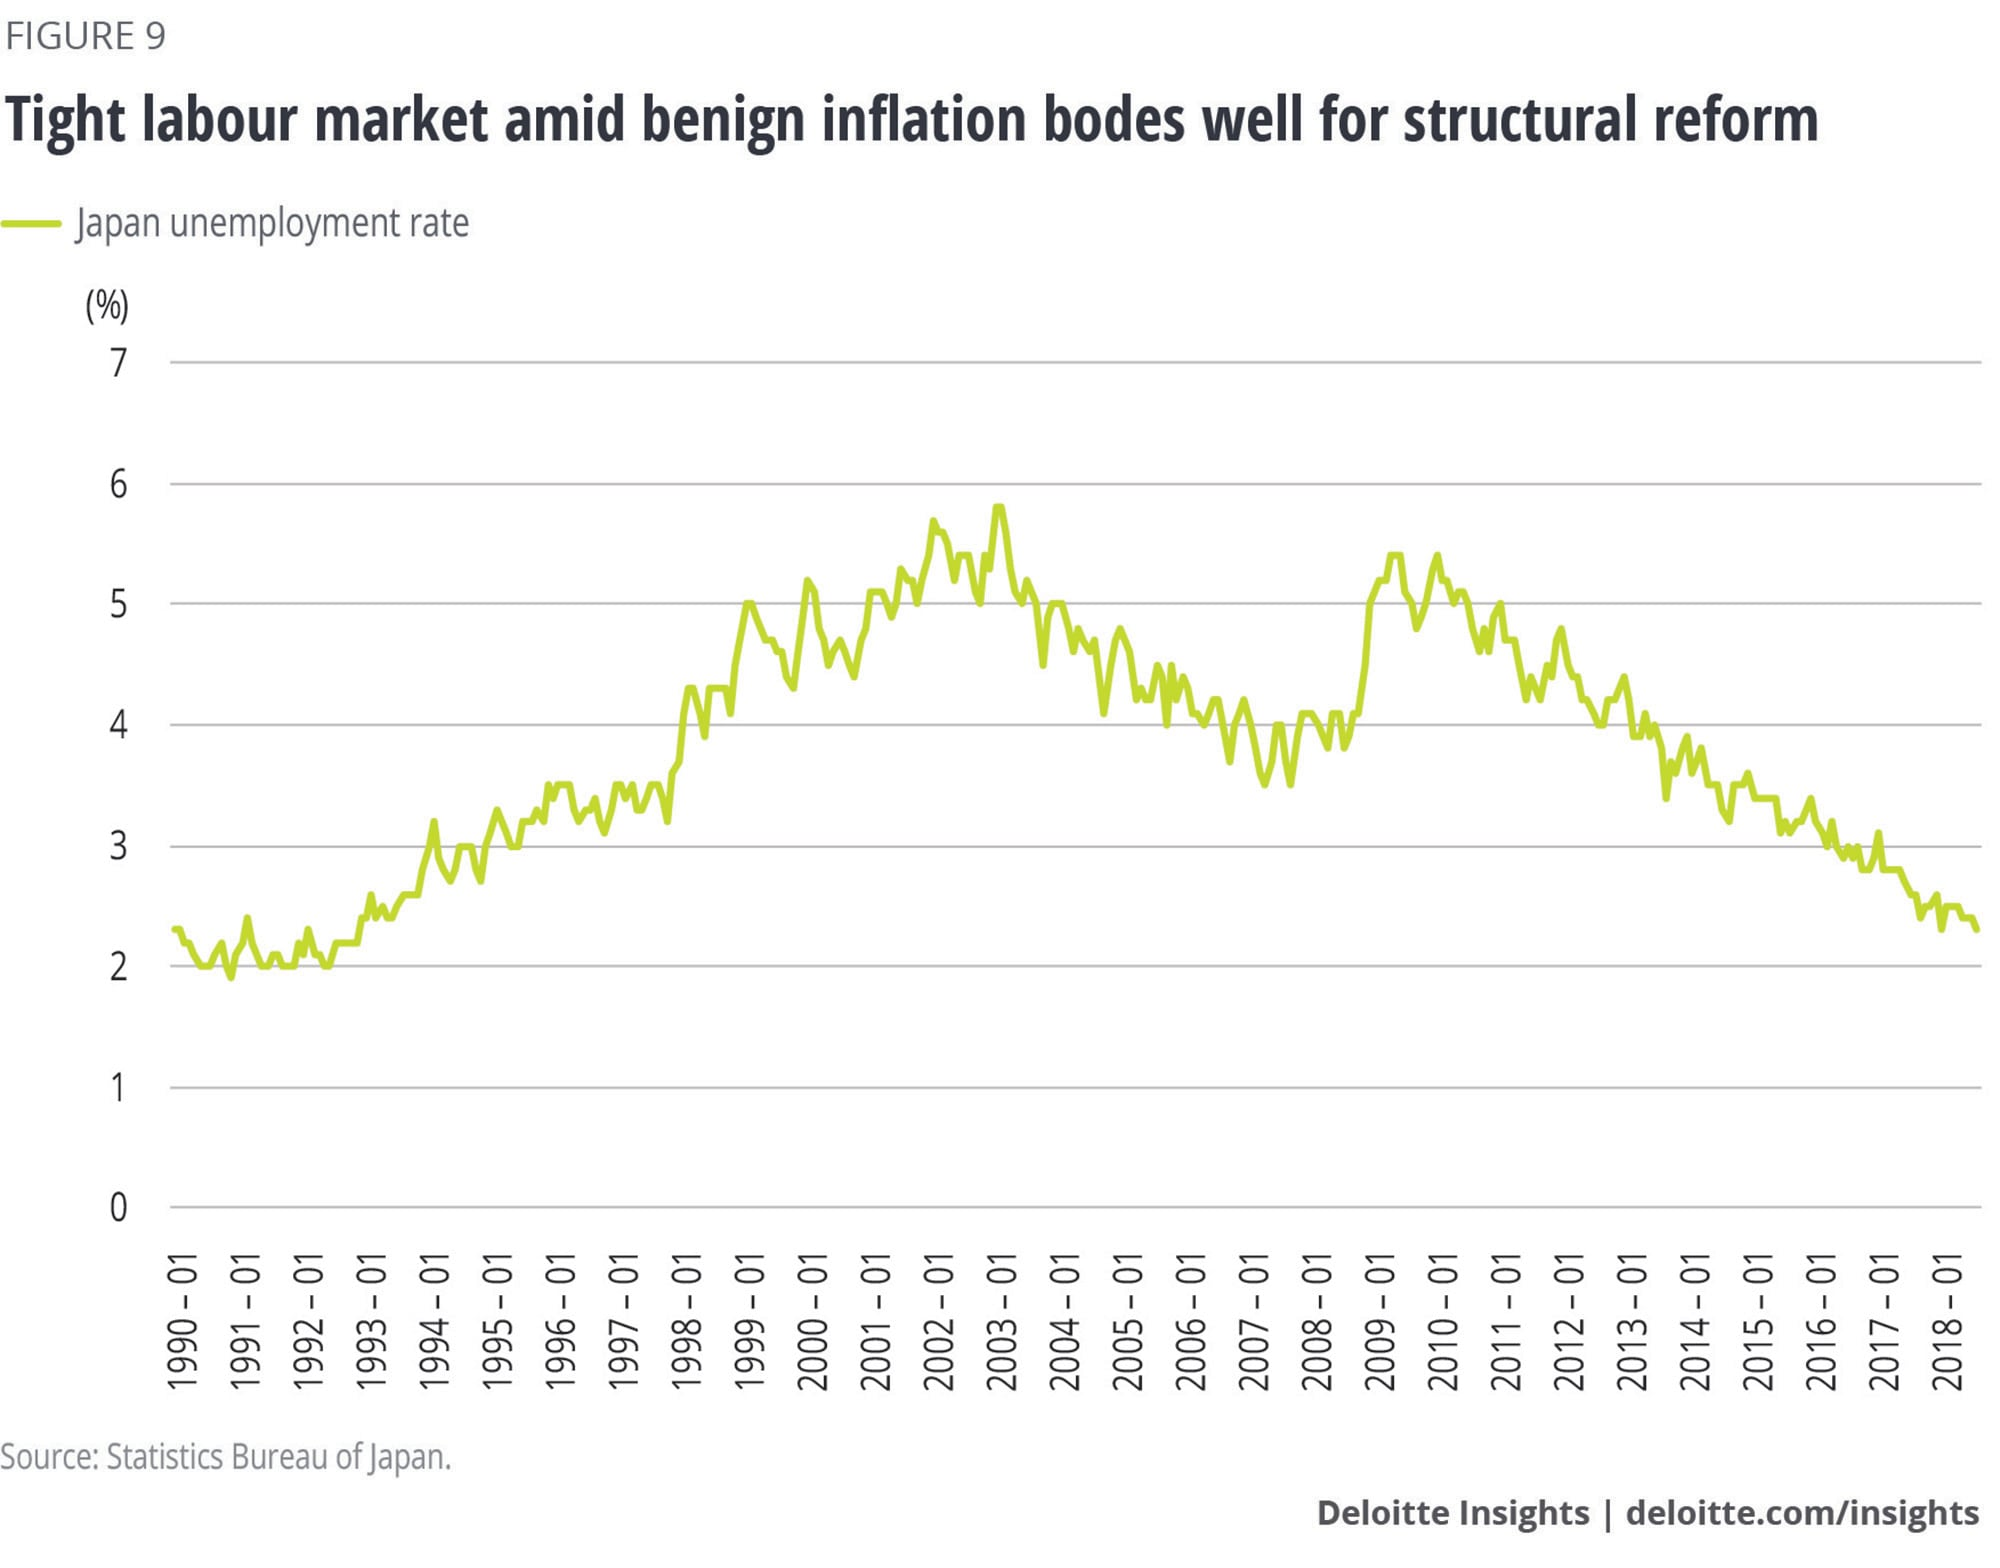 Tight labour market amid benign inflation bodes well for structural reform